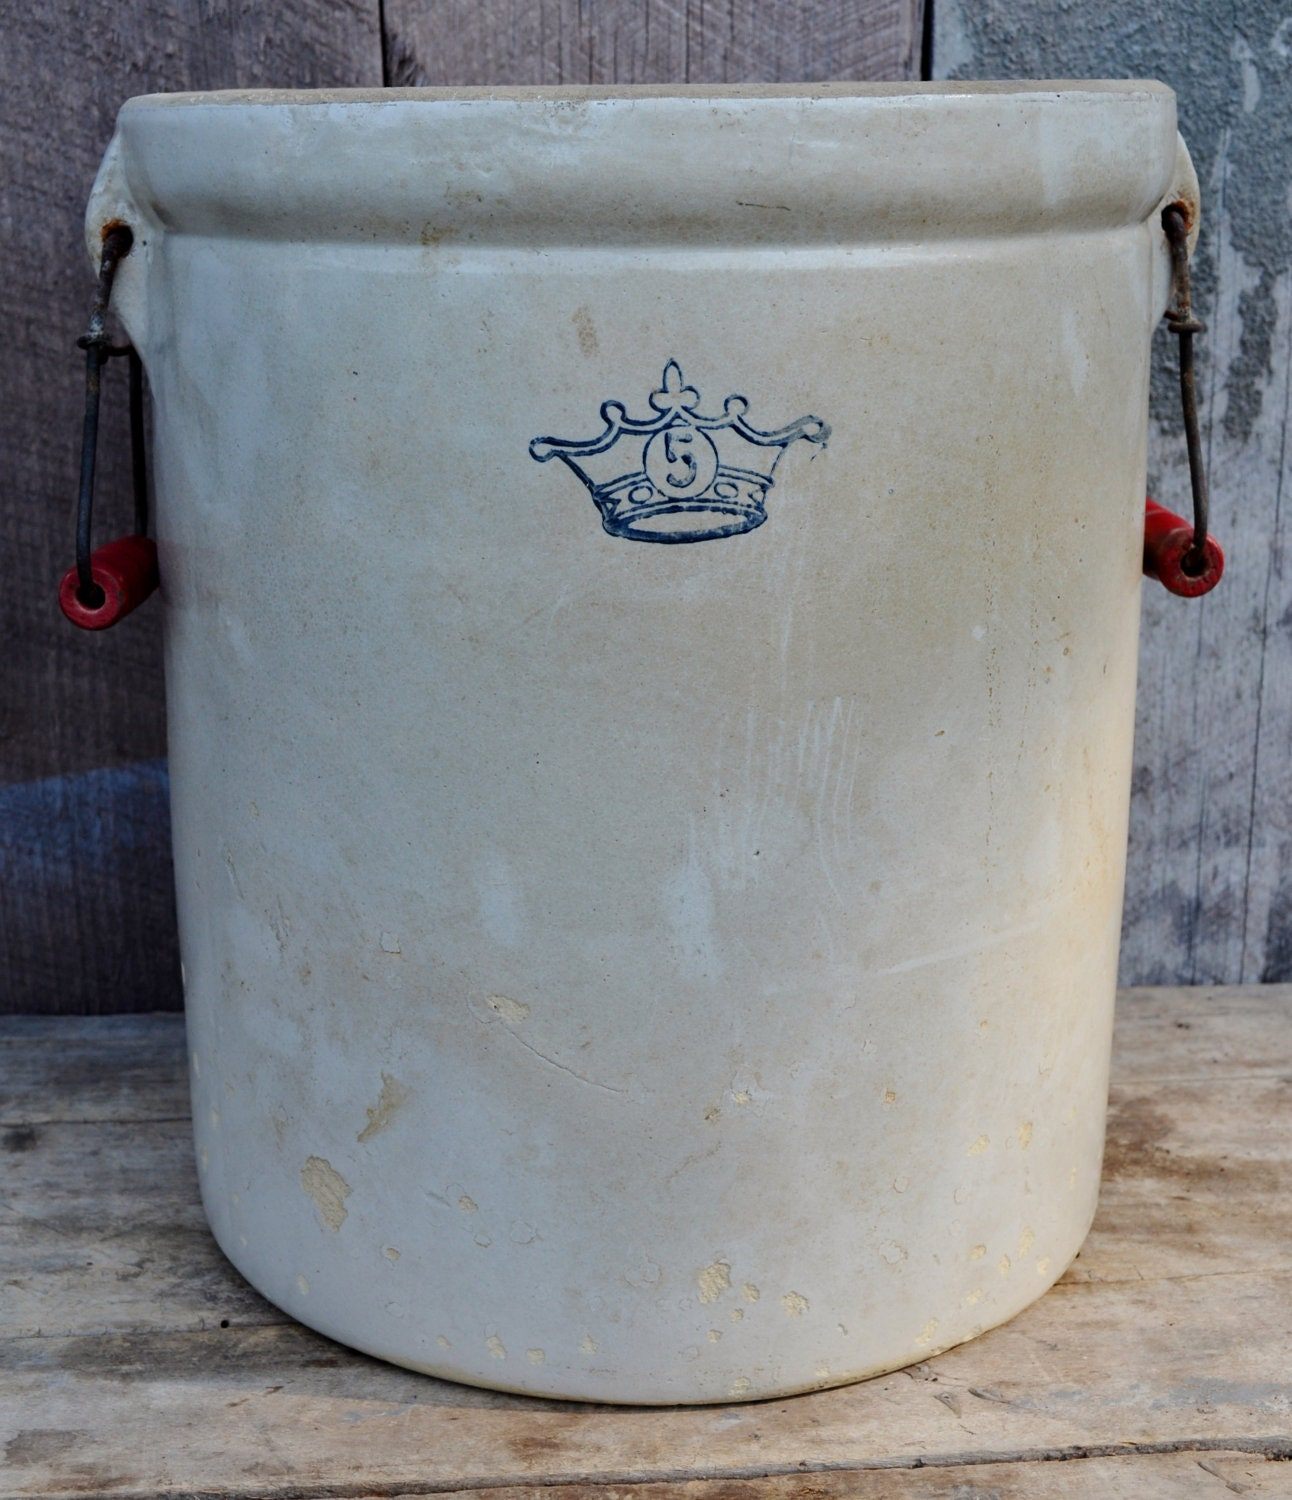 Ransbottom Stoneware Crock 5 Gallon Blue By